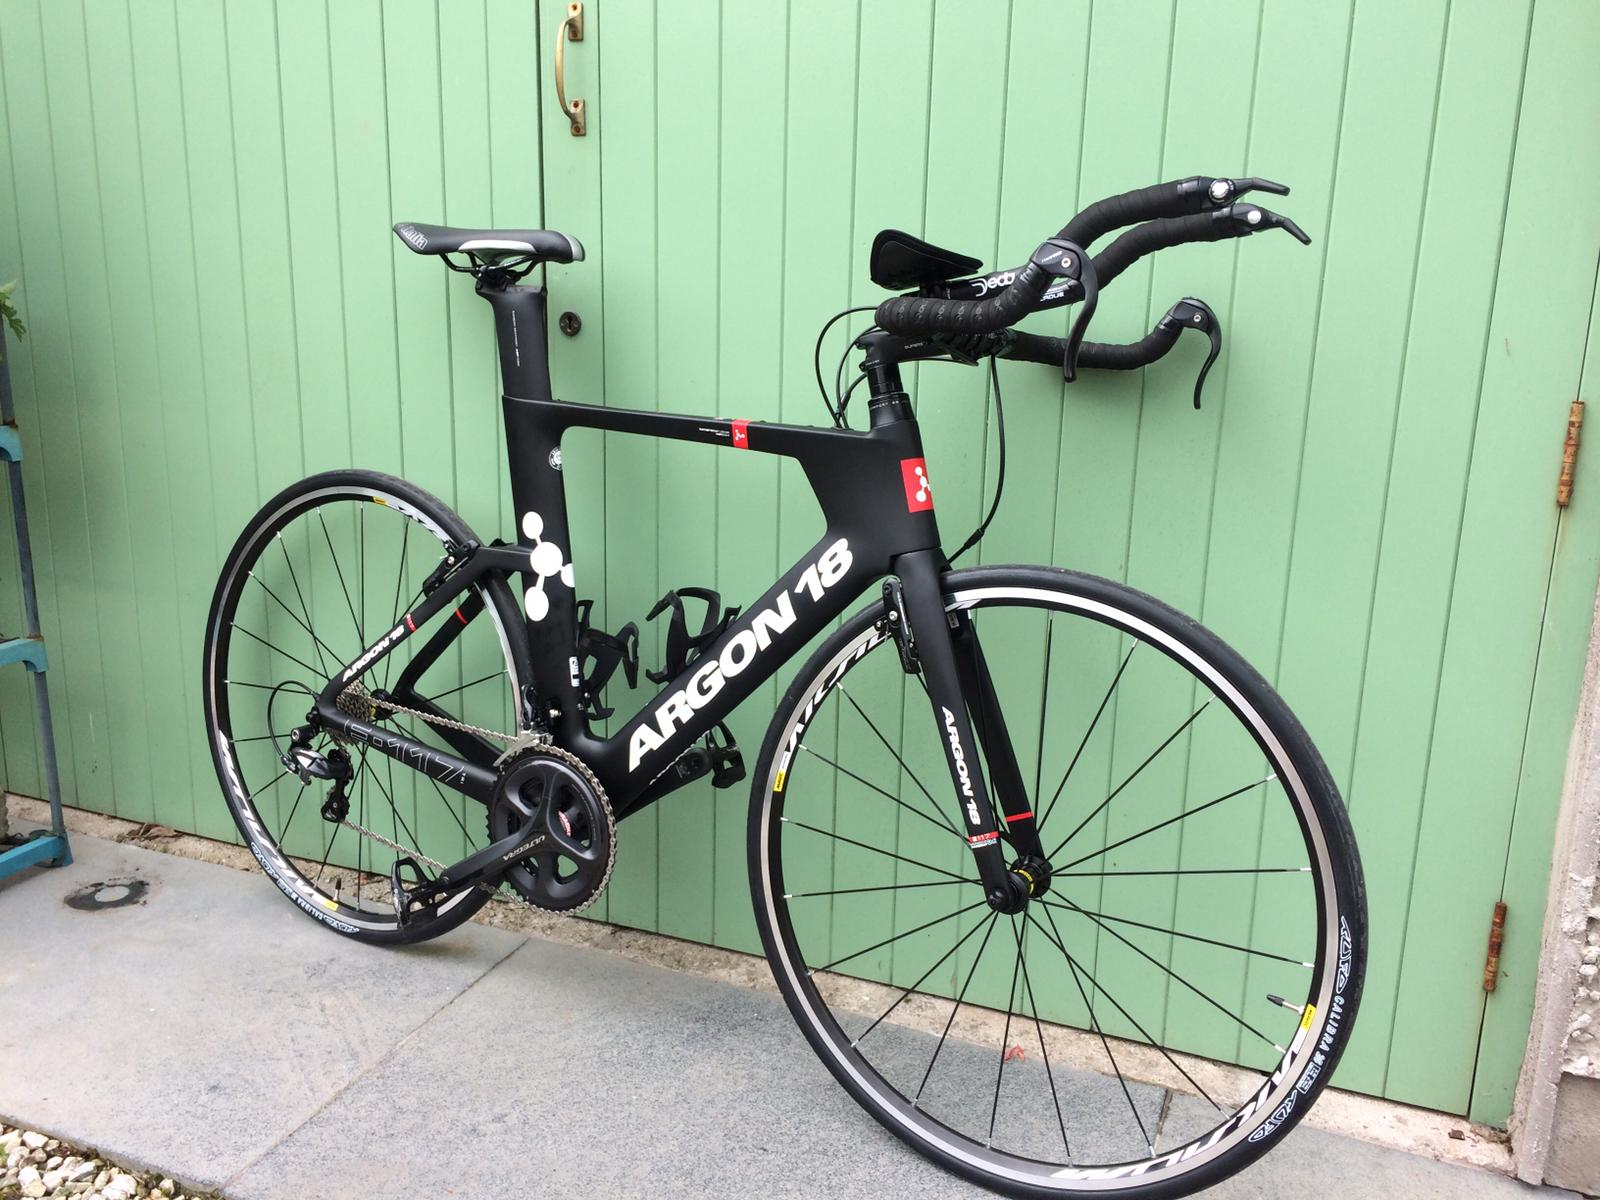 TheBikeFix.ie services road bikes from its workshop in Glanmire-1